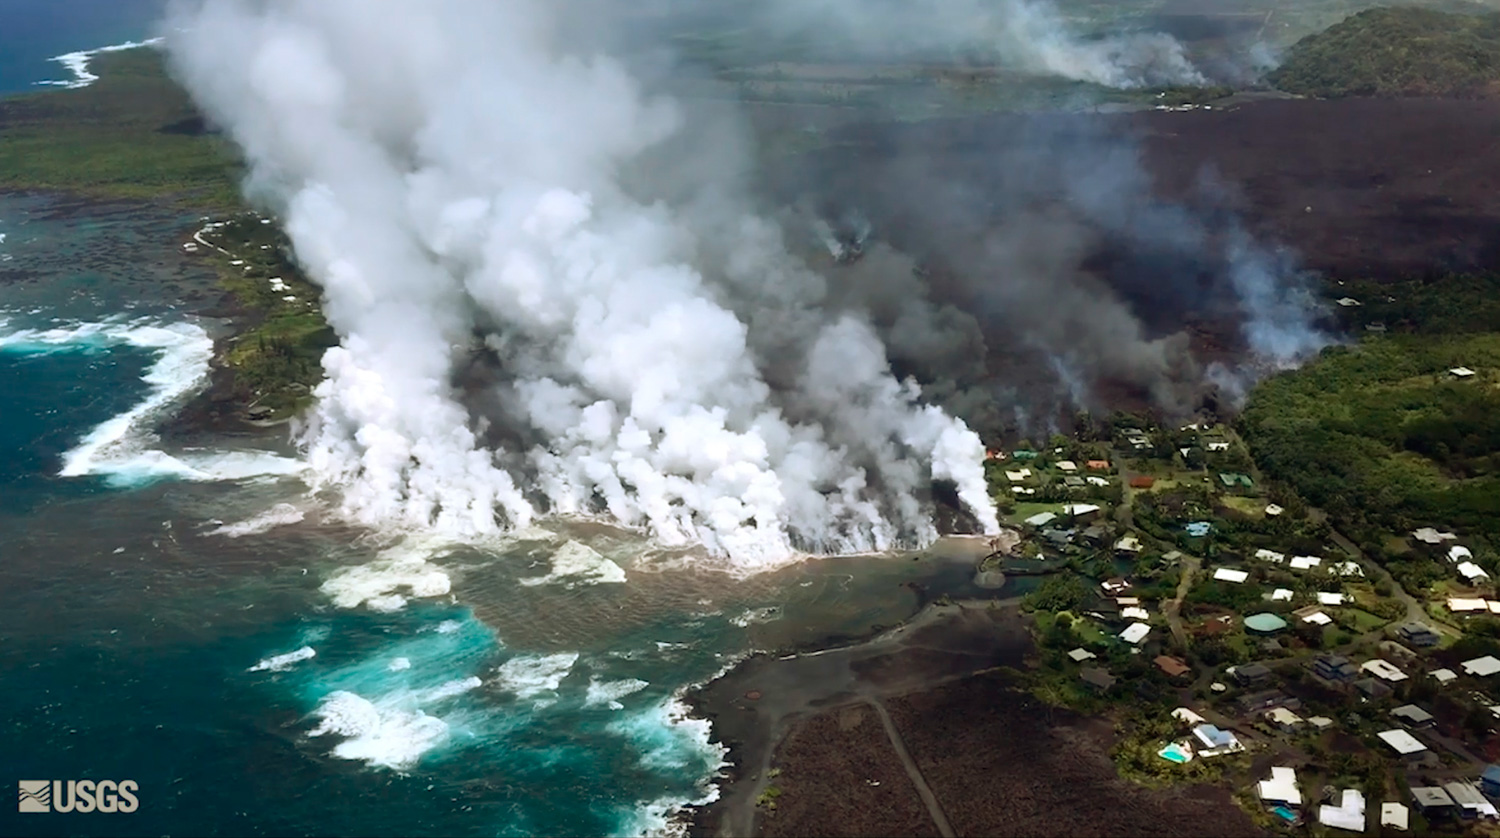 <div class='meta'><div class='origin-logo' data-origin='none'></div><span class='caption-text' data-credit='U.S. Geological Survey via AP'>Lava from a fissure flowing into the ocean at Kapoho Bay at Kapoho on the island of Hawaii.</span></div>